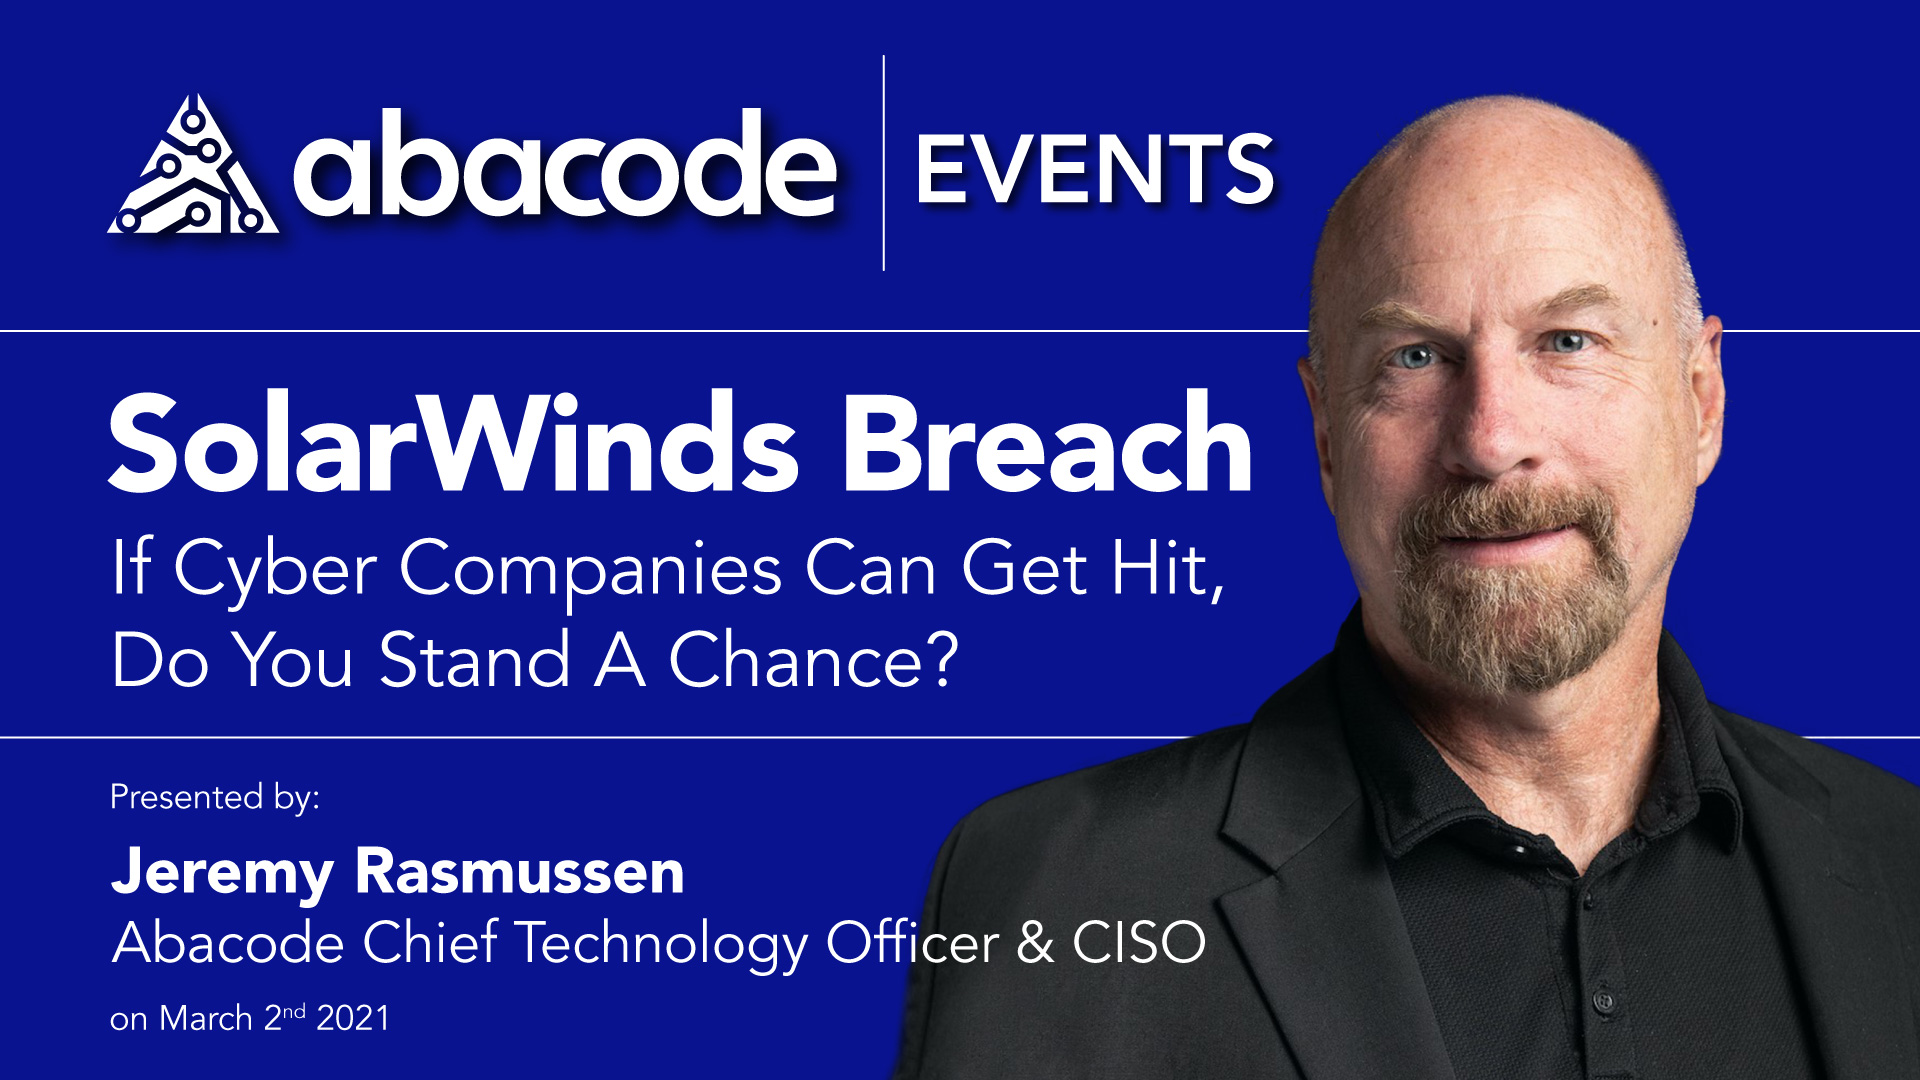 SolarWinds Breach-If Cyber Companies Can Get Hit, Do You Stand A Chance- Jeremy Rasmussen